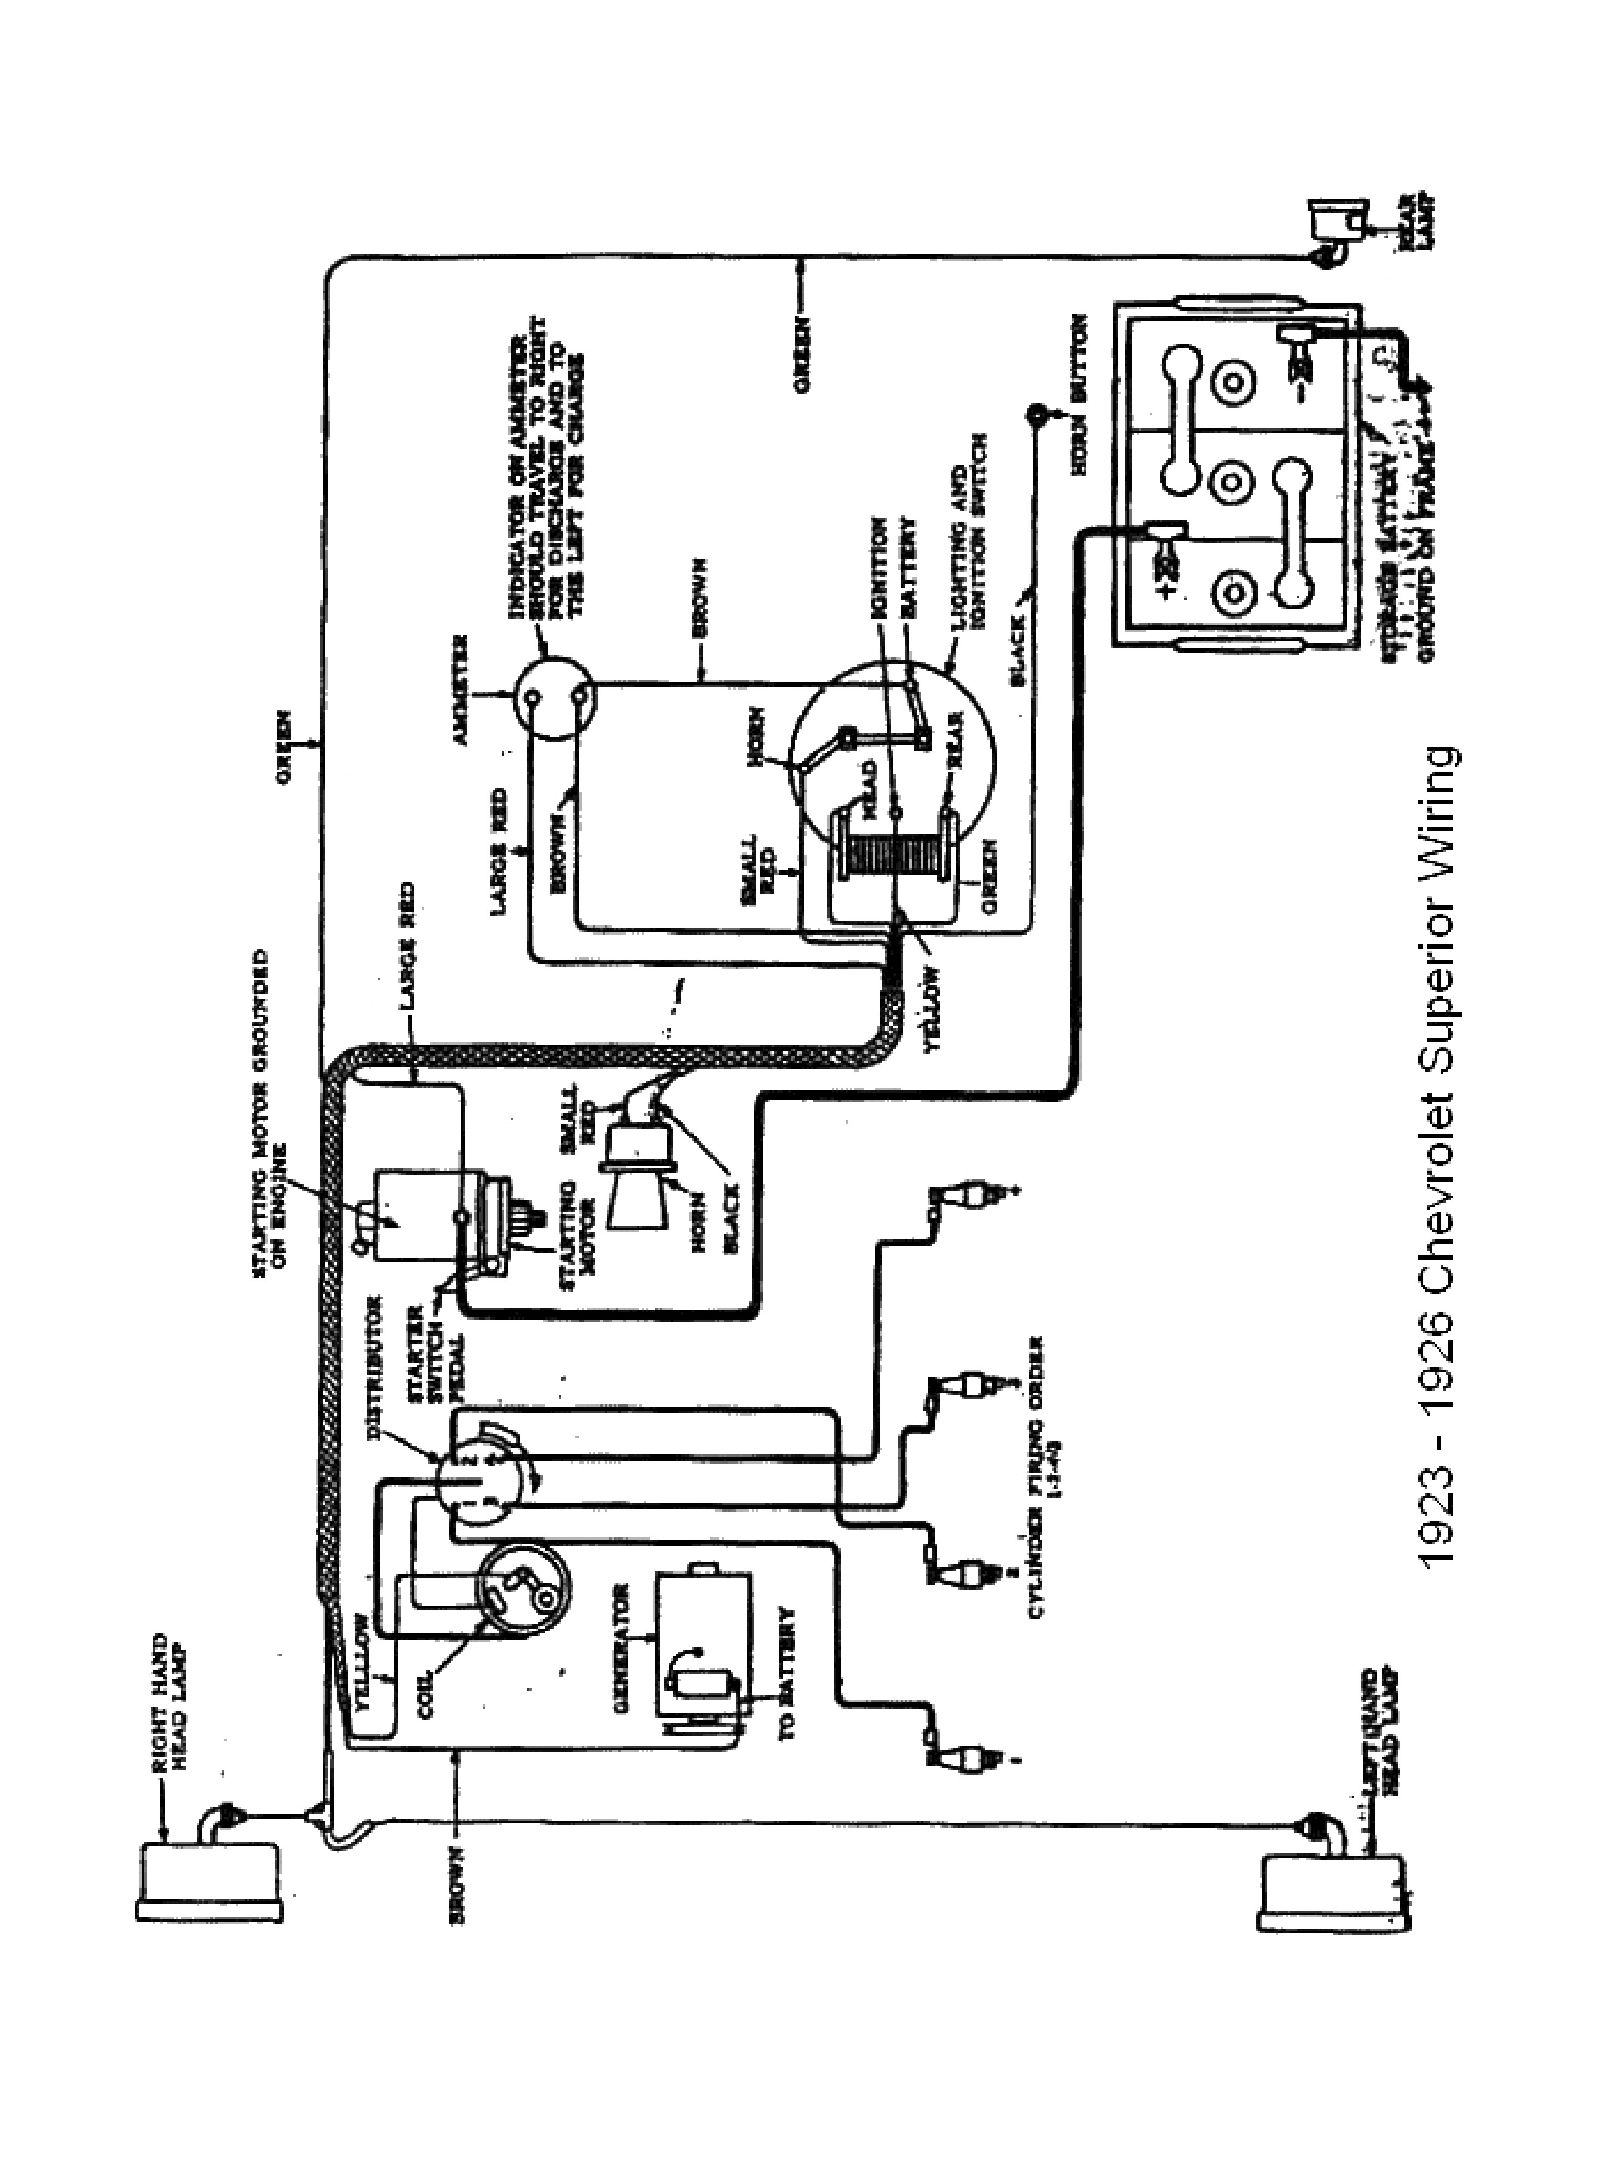 chevy wiring diagrams GM Starter Wiring 1923 superior model 1923 superior model